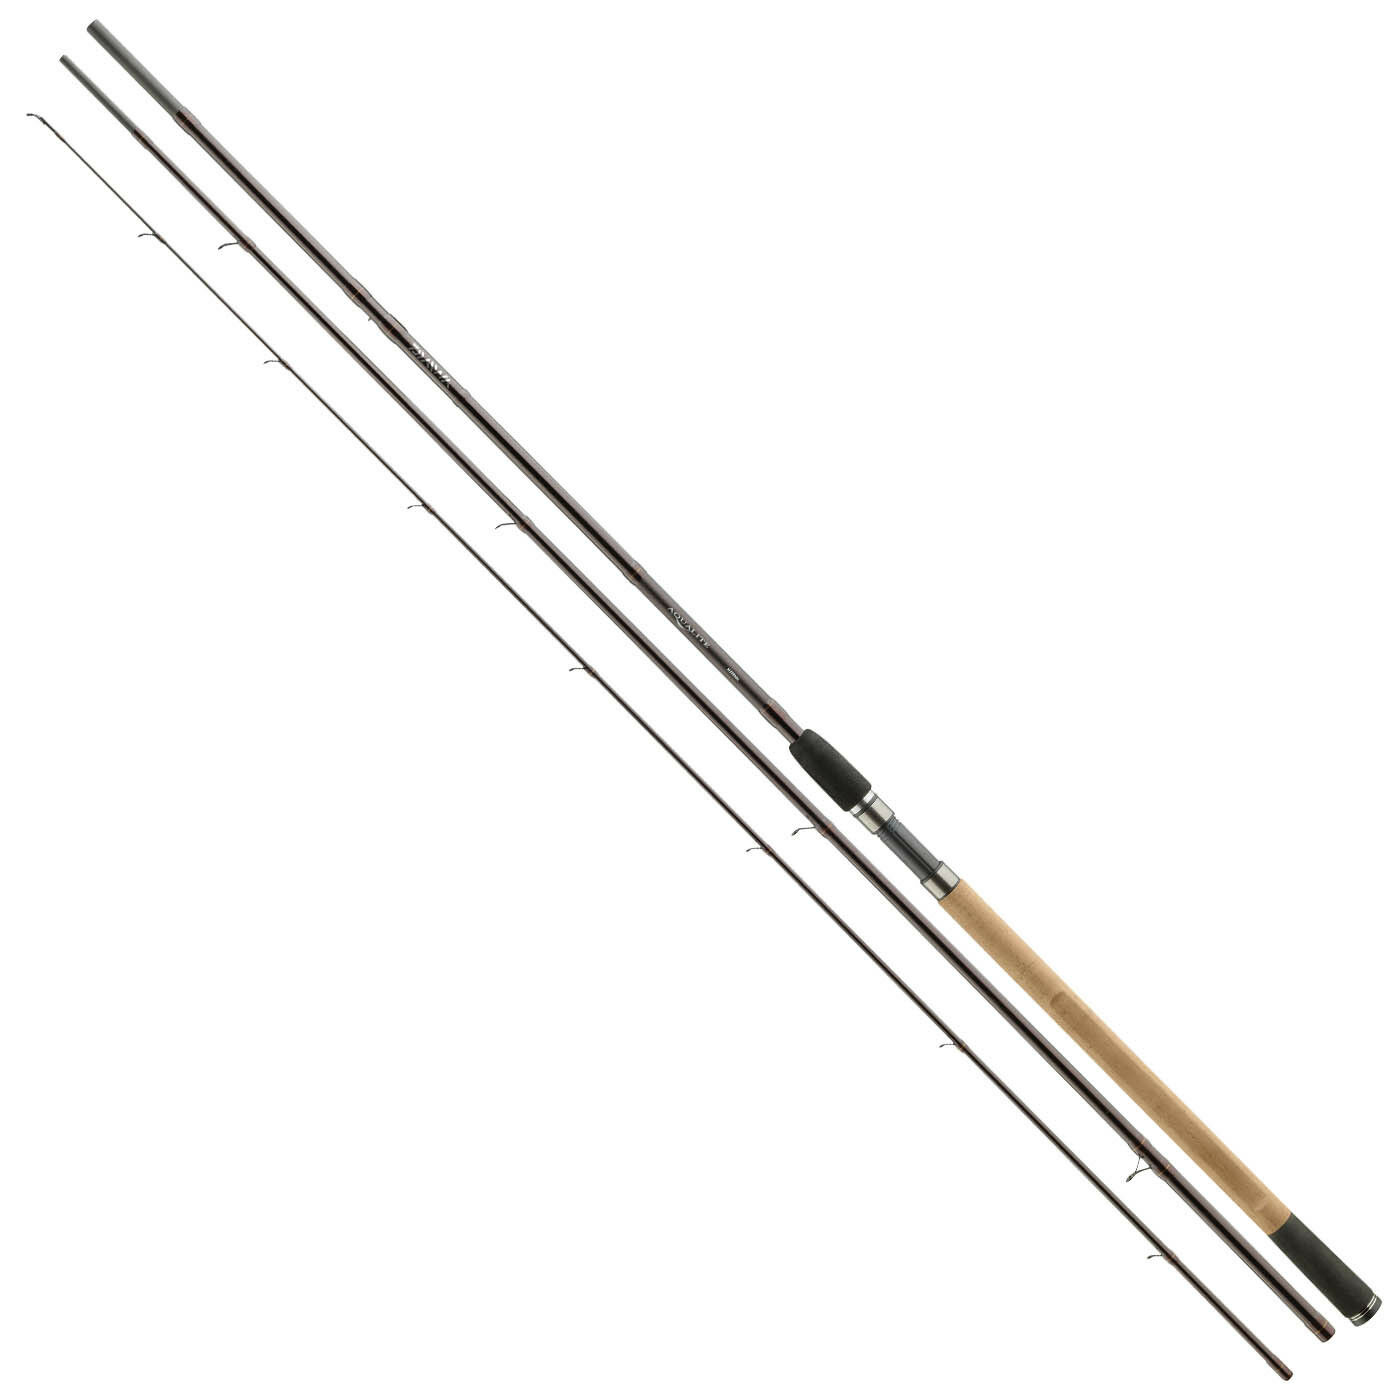 Daiwa Aqualite Power Match, 13.78ft, 3 parts, 14 guides, Match rod 11784-425